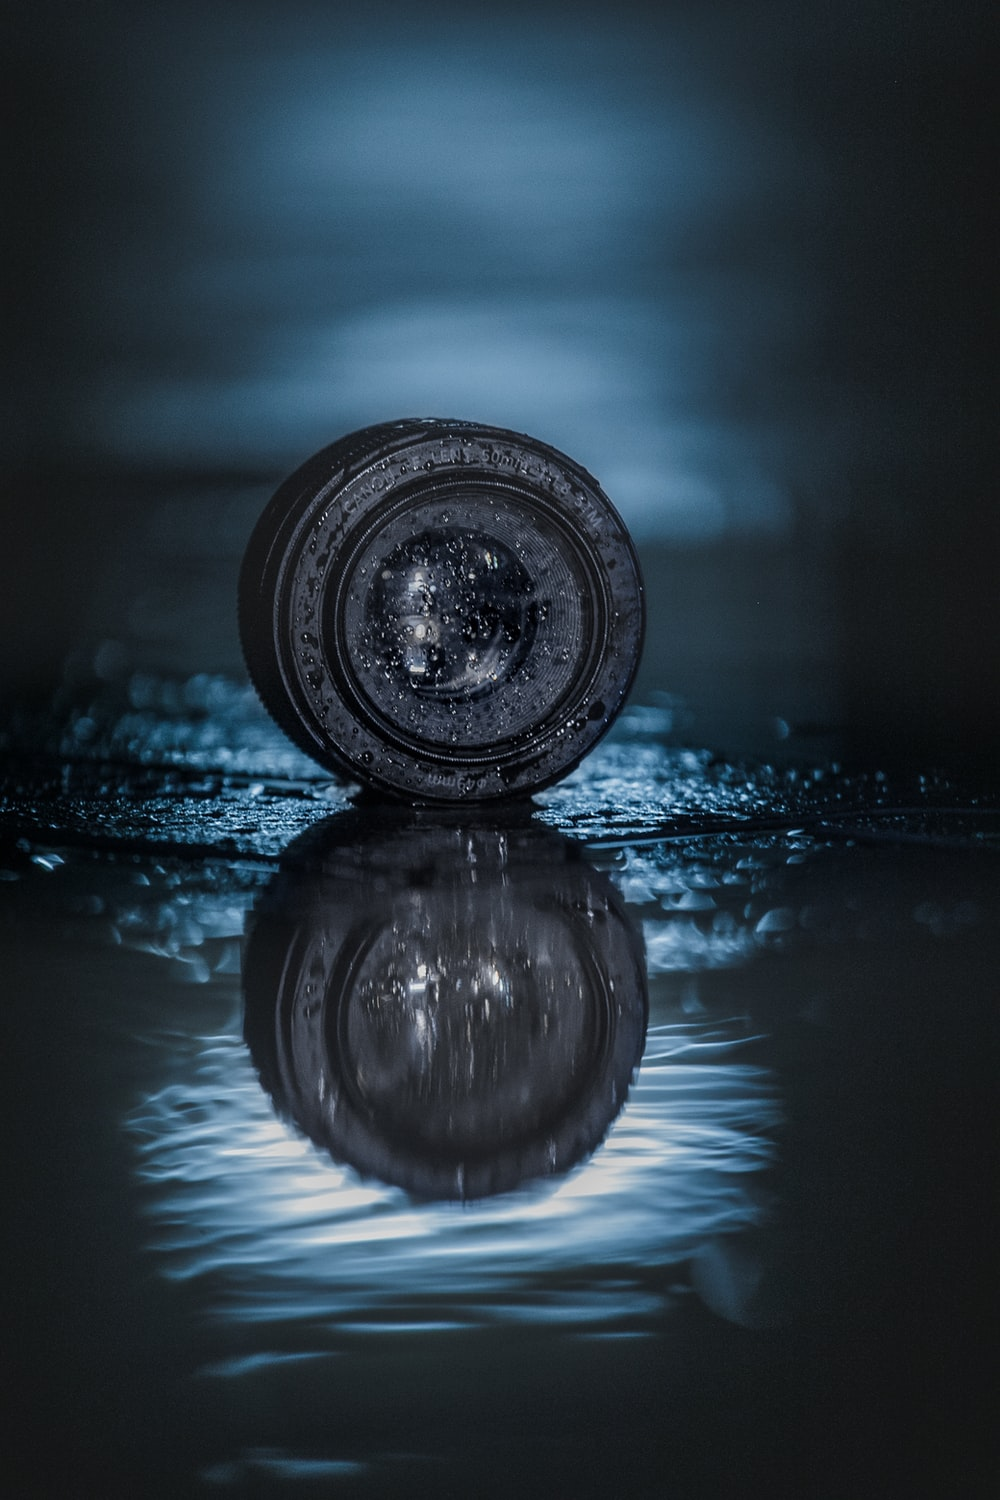 round black smartphone lens with reflection on water digital wallpaper